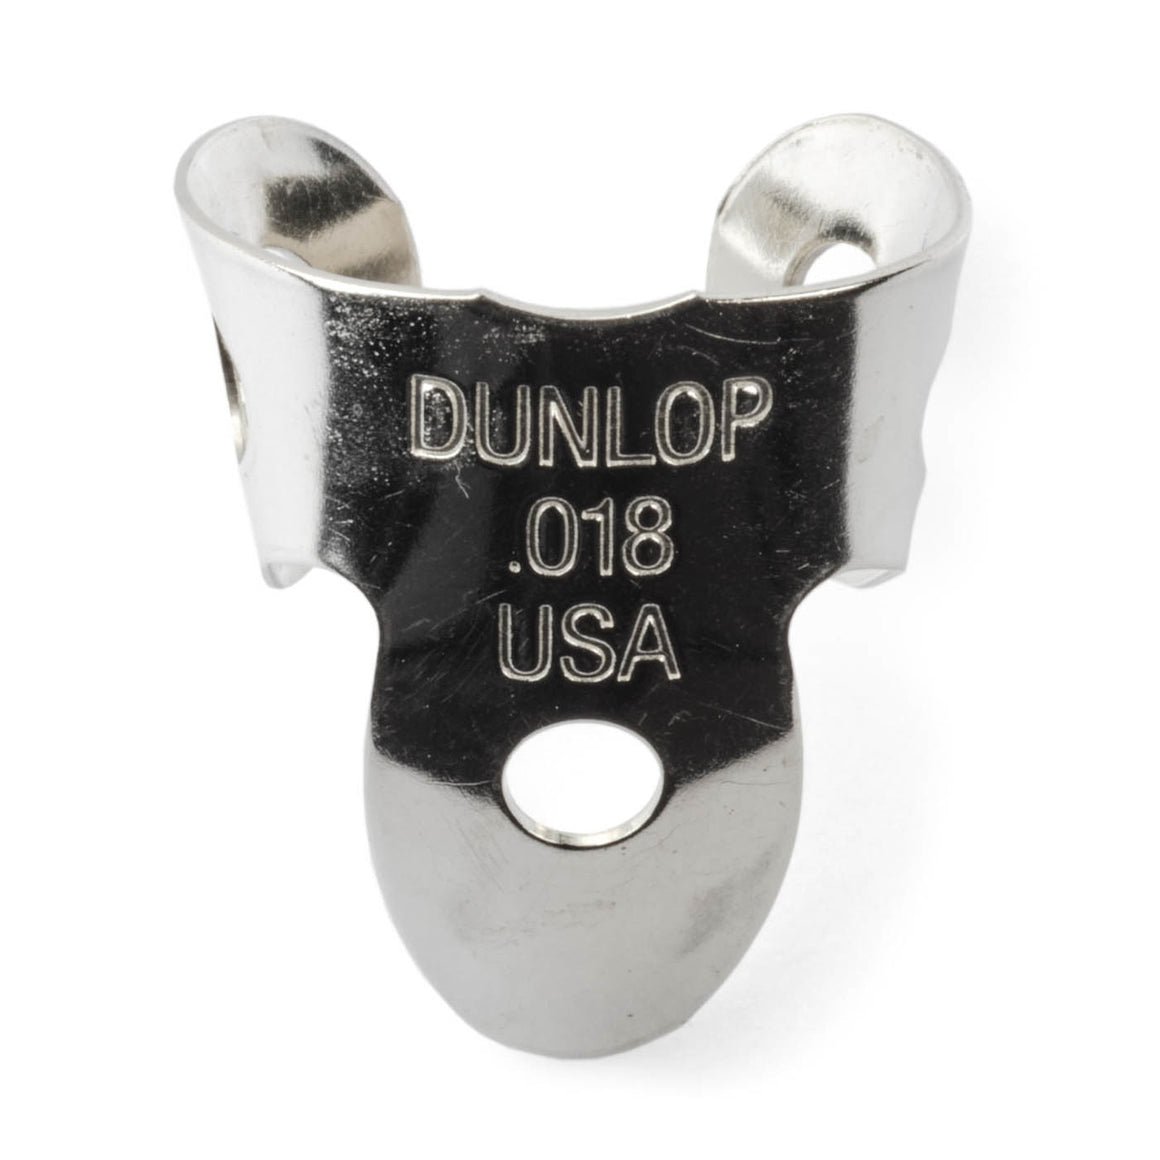 Dunlop .018 Nickel finger picks